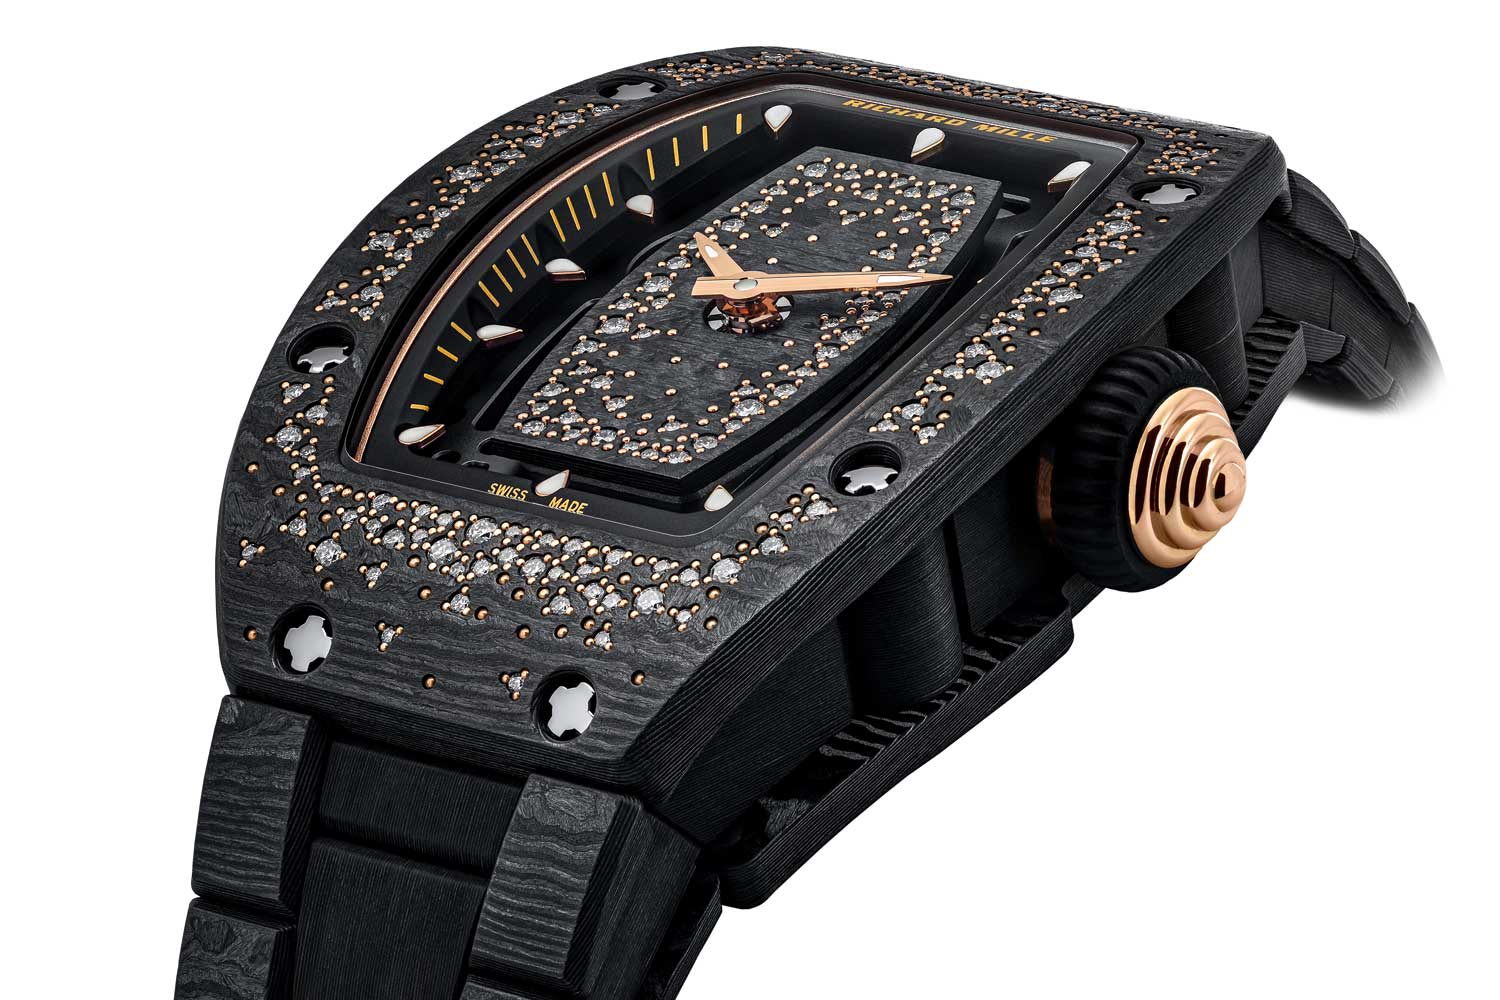 Dressed up with 181 diamonds, the Carbon TPT® case of this timepiece demonstrates the brand's exceptional skills in stone-setting.